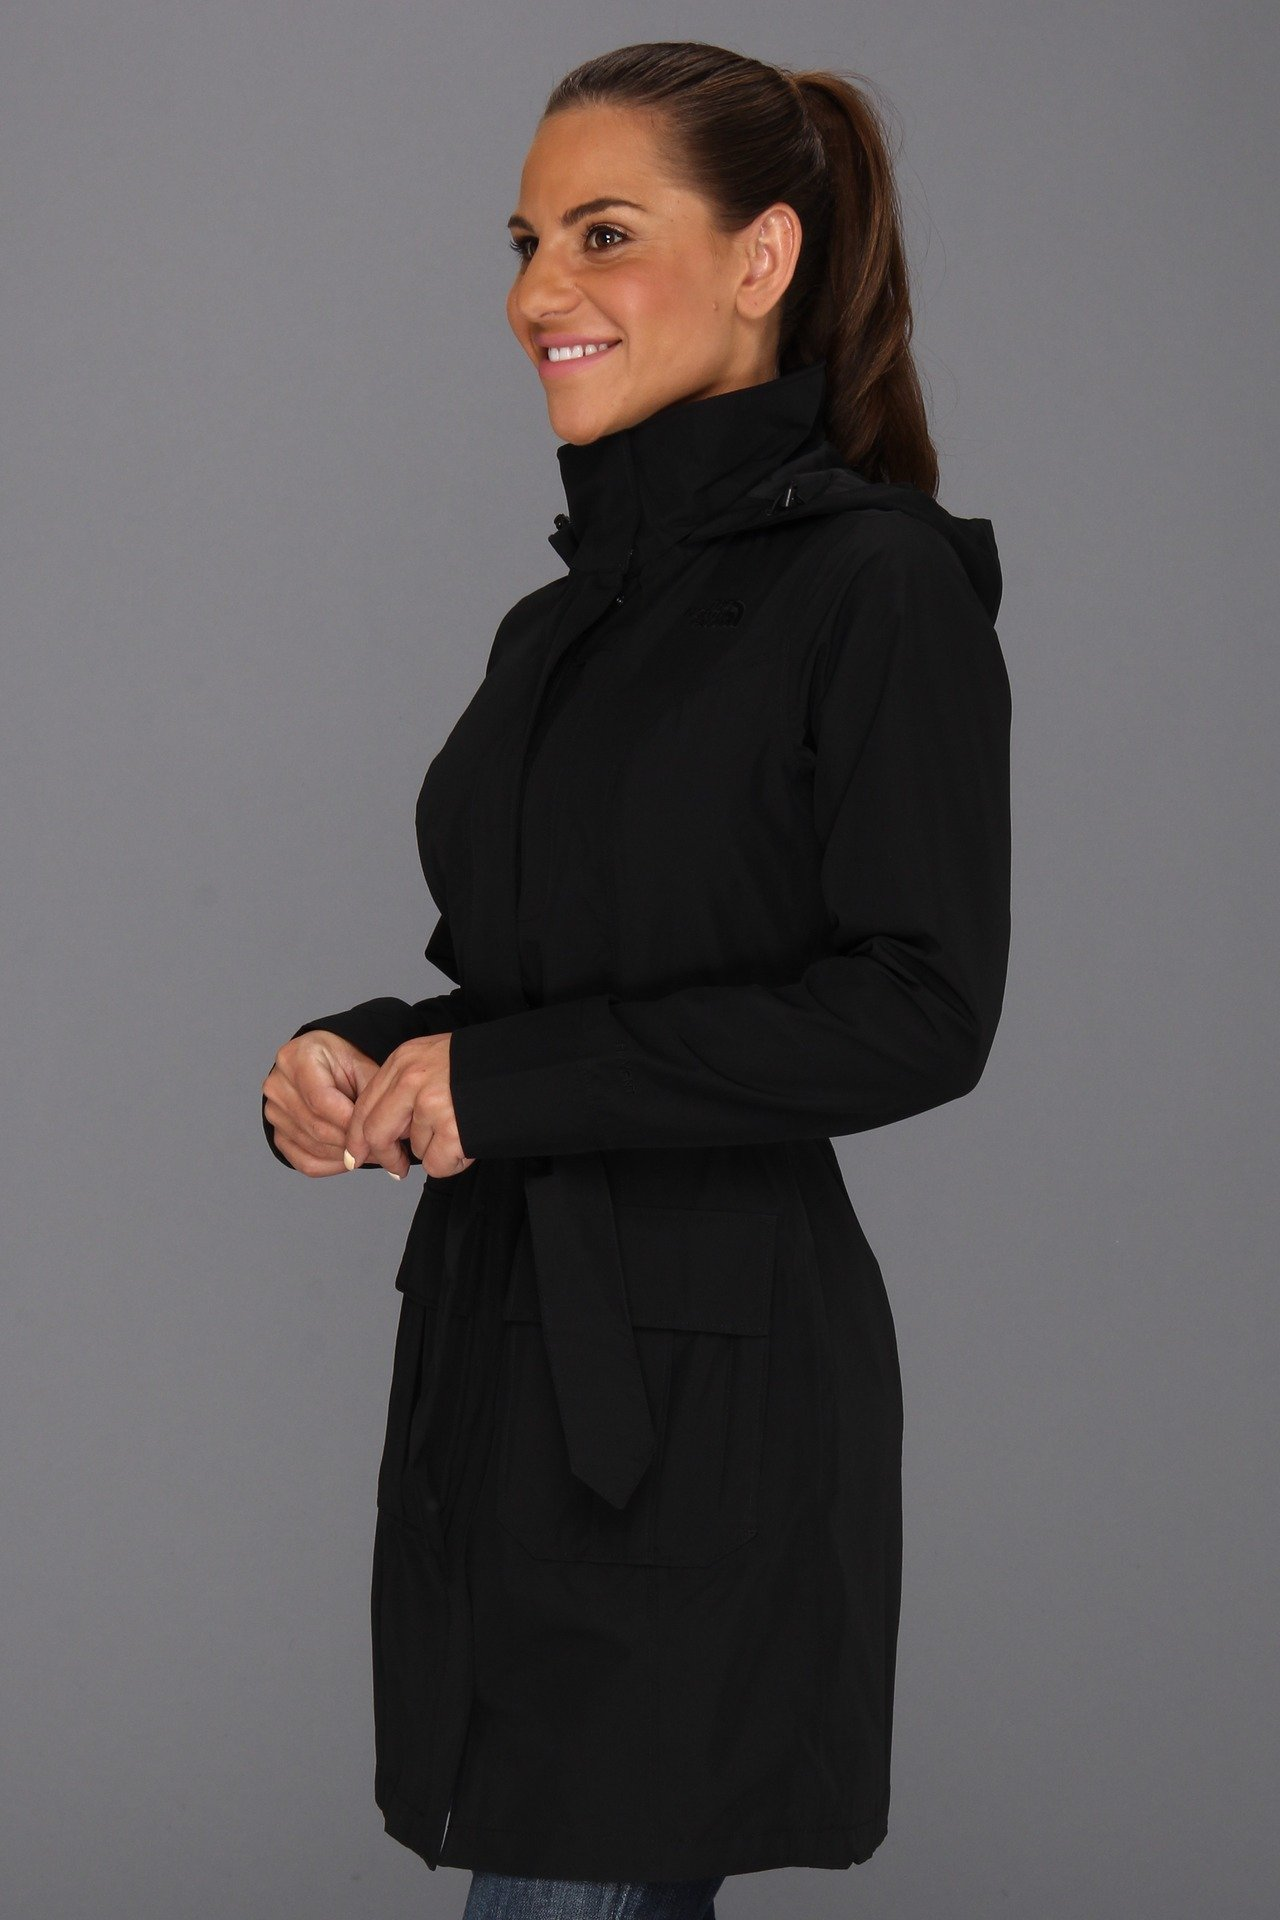 The North Face Womens Stella Grace Jacket image 1